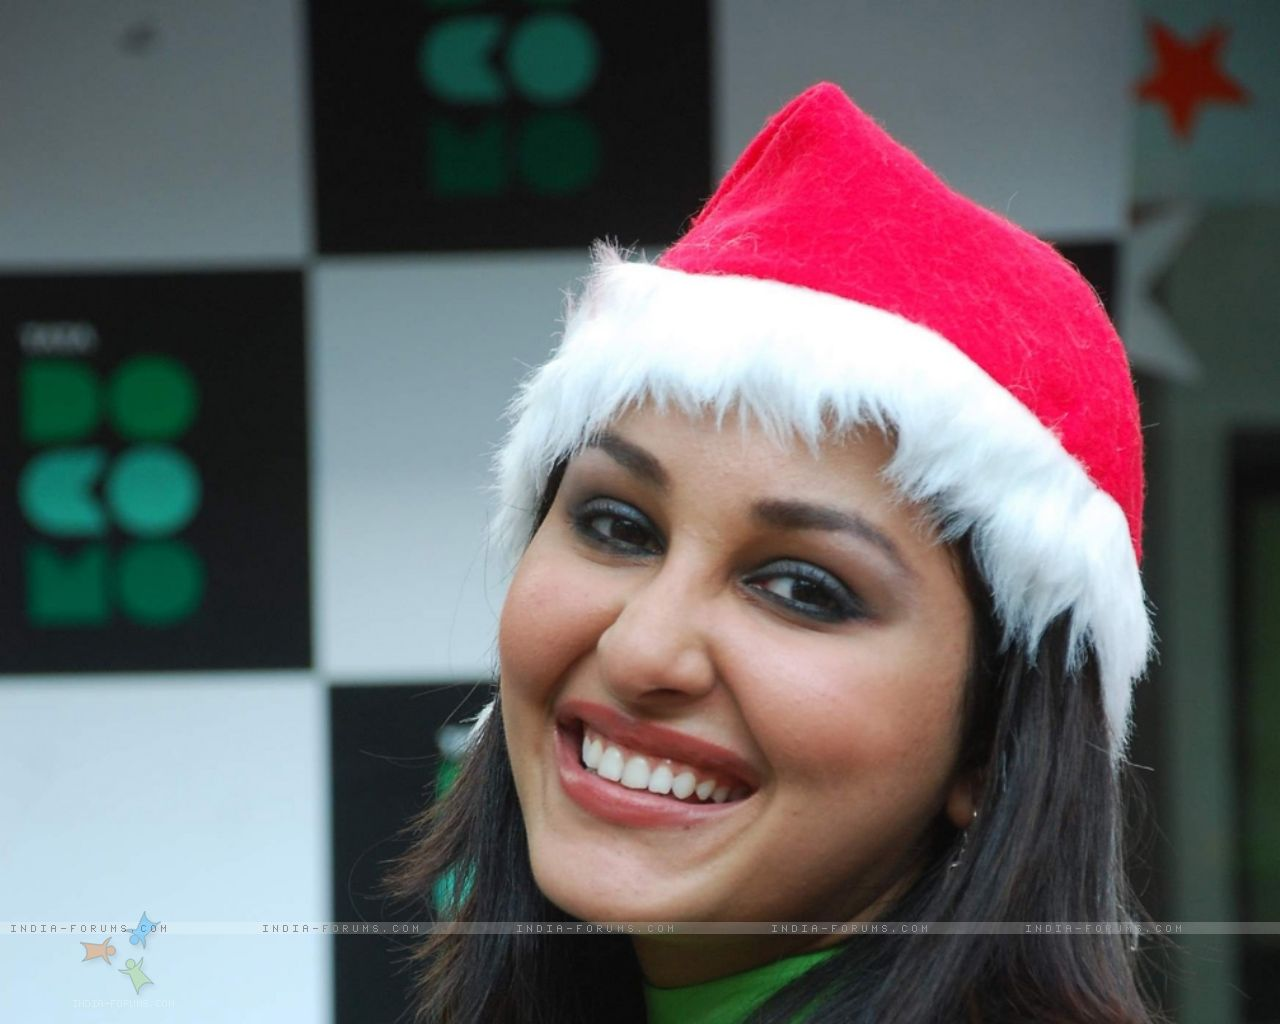 Pooja Chopra Wallpapers hd Pooja Chopra hd Wallpapers